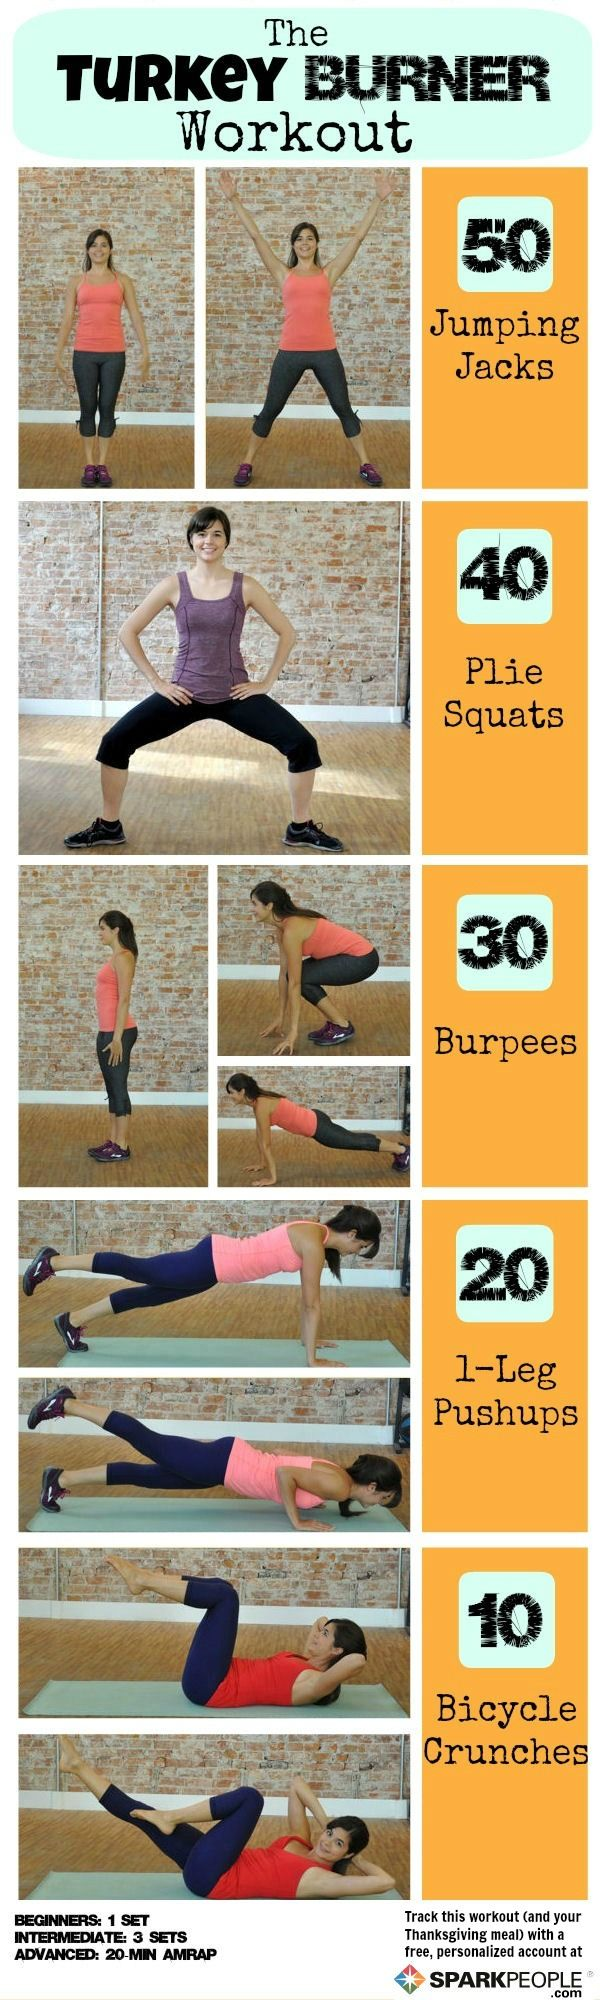 Torch Calories with the Turkey Burner Workout!